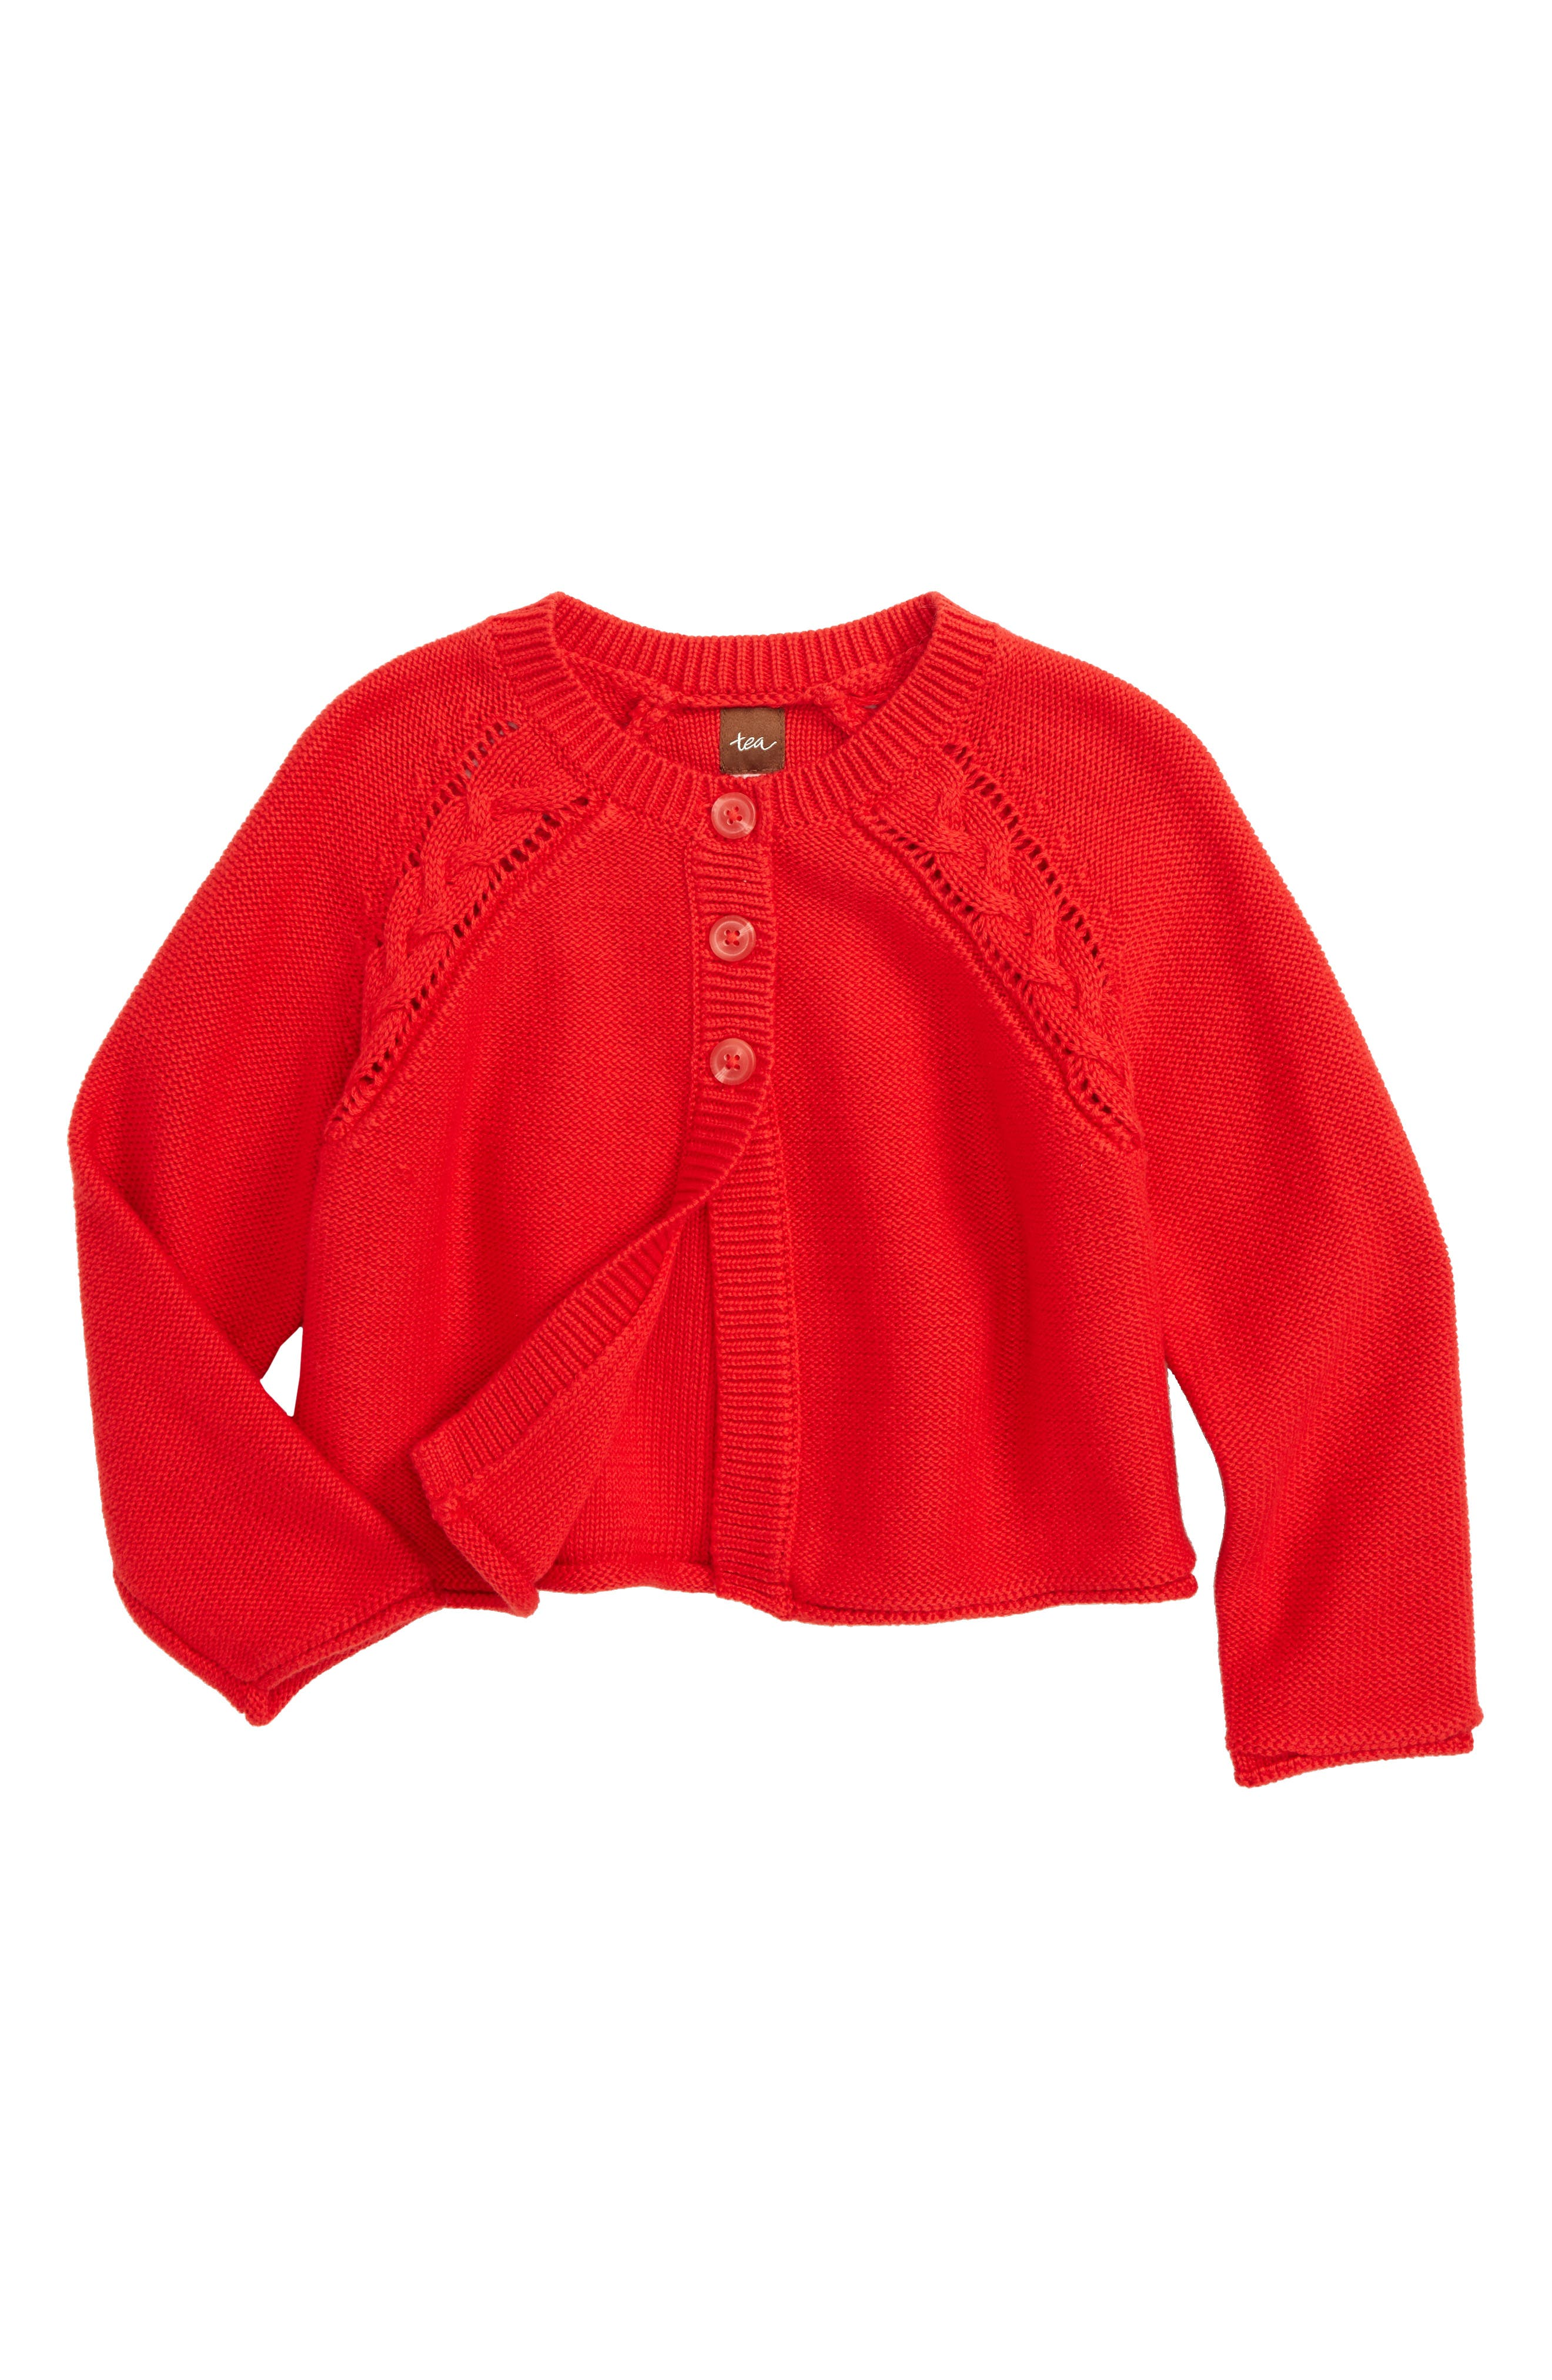 Agatha Cable Cardigan,                         Main,                         color, Red Lantern